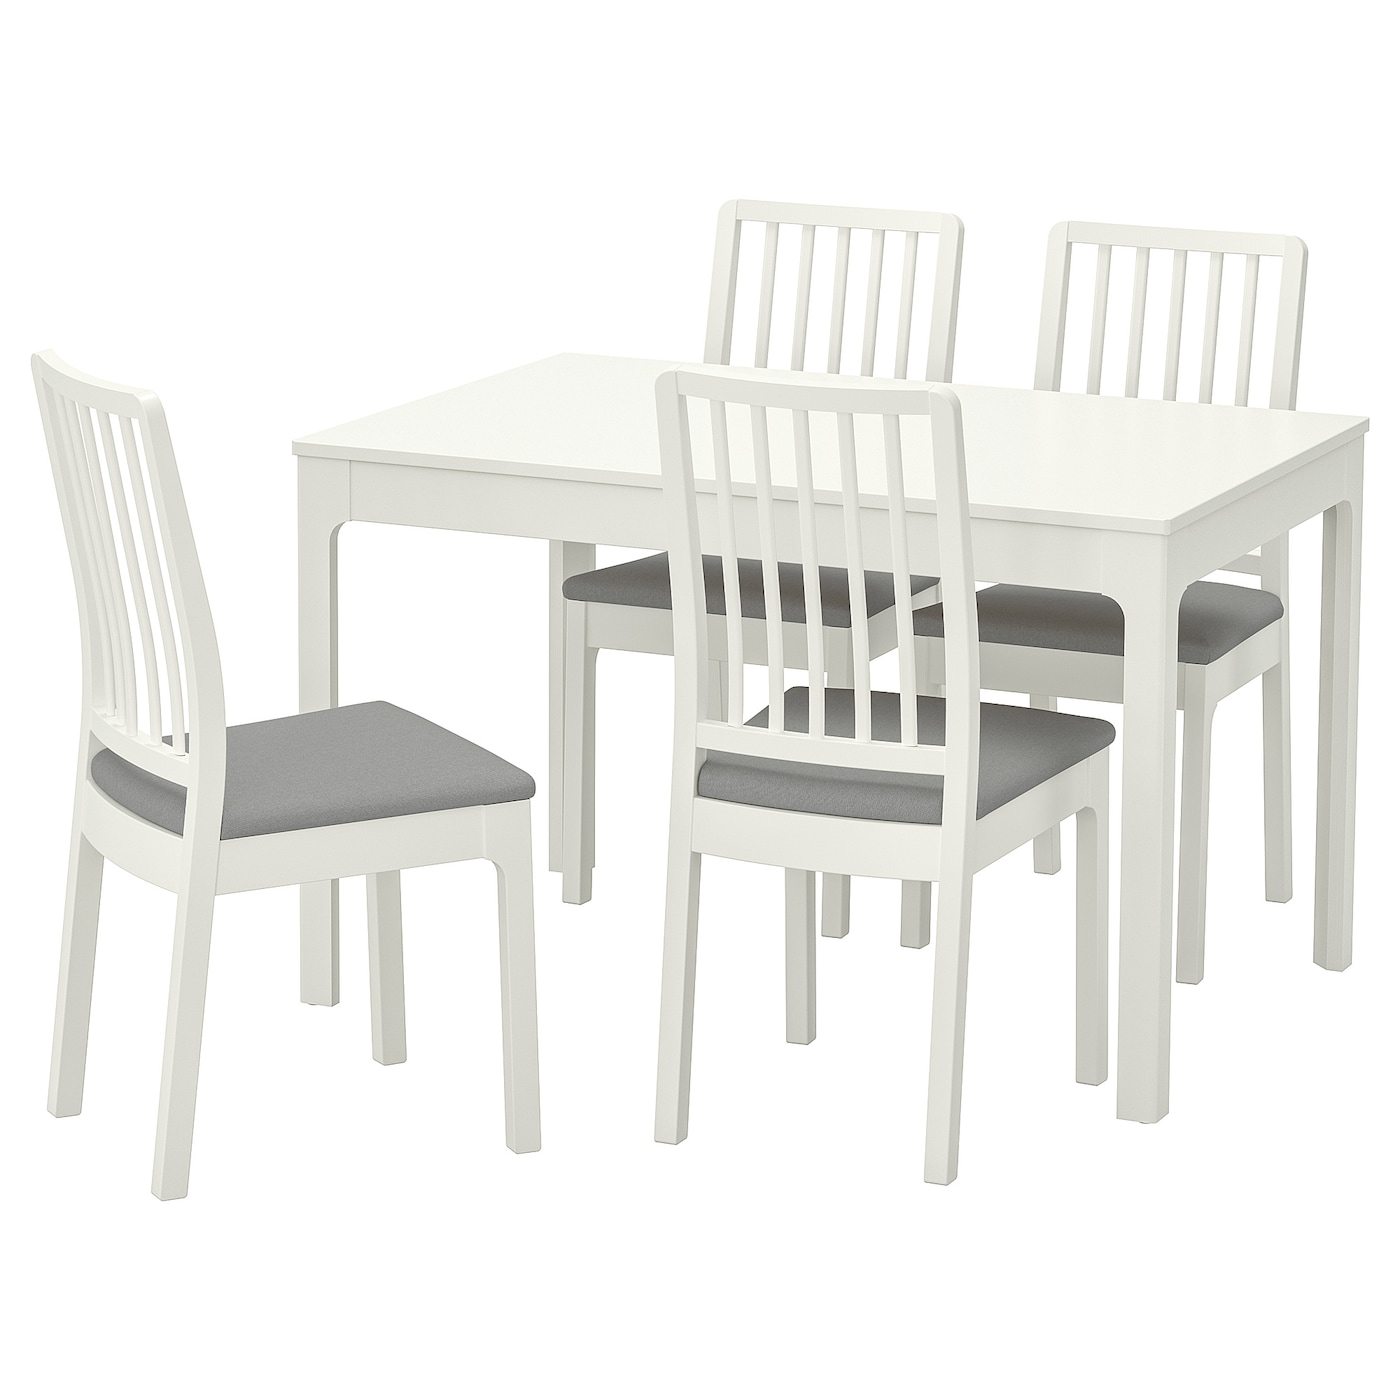 EKEDALEN/EKEDALEN Table and 4 chairs White/ramna light grey ...